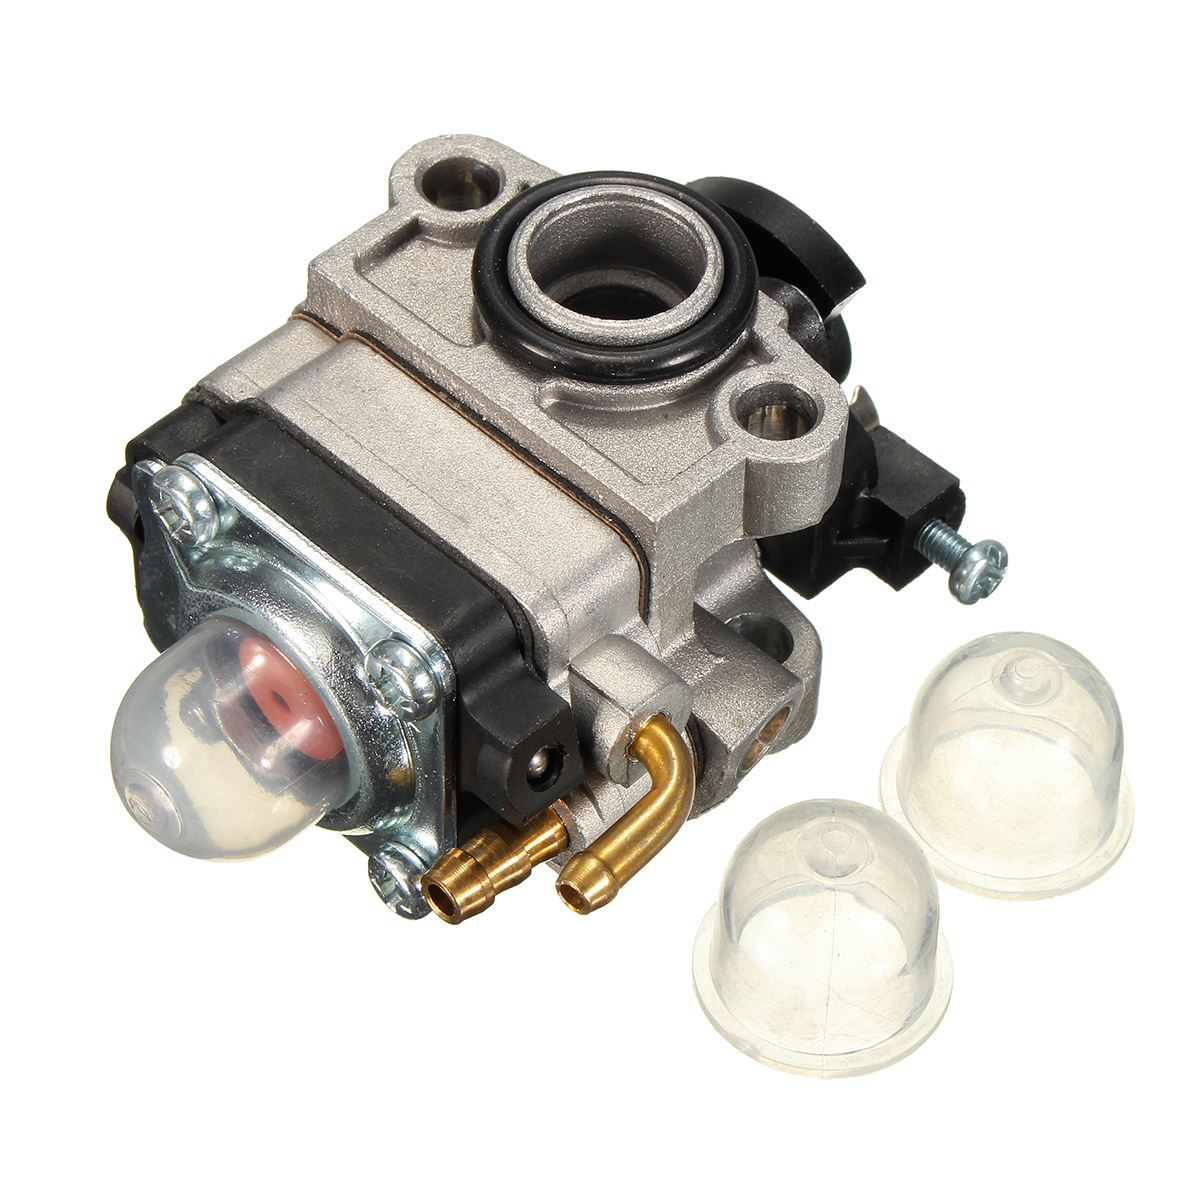 Carburetor For Troy-Bilt /TB575SS /TB525CS /Trimmer /Cultivator 753-04745 753-1225 Aluminum Copper Plastic